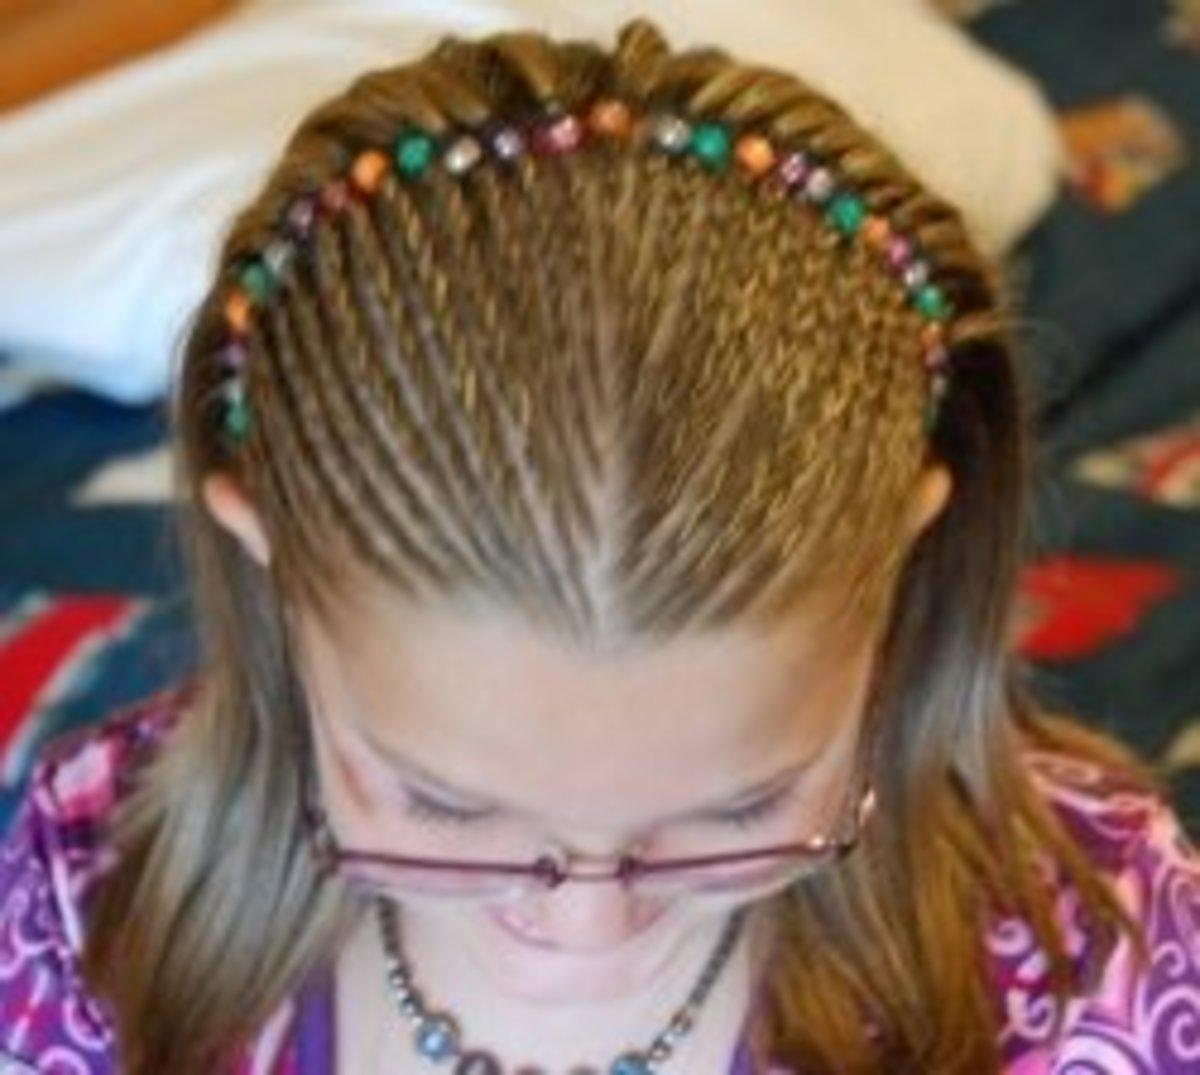 Hair Braiding in the Bahamas and Caribbean